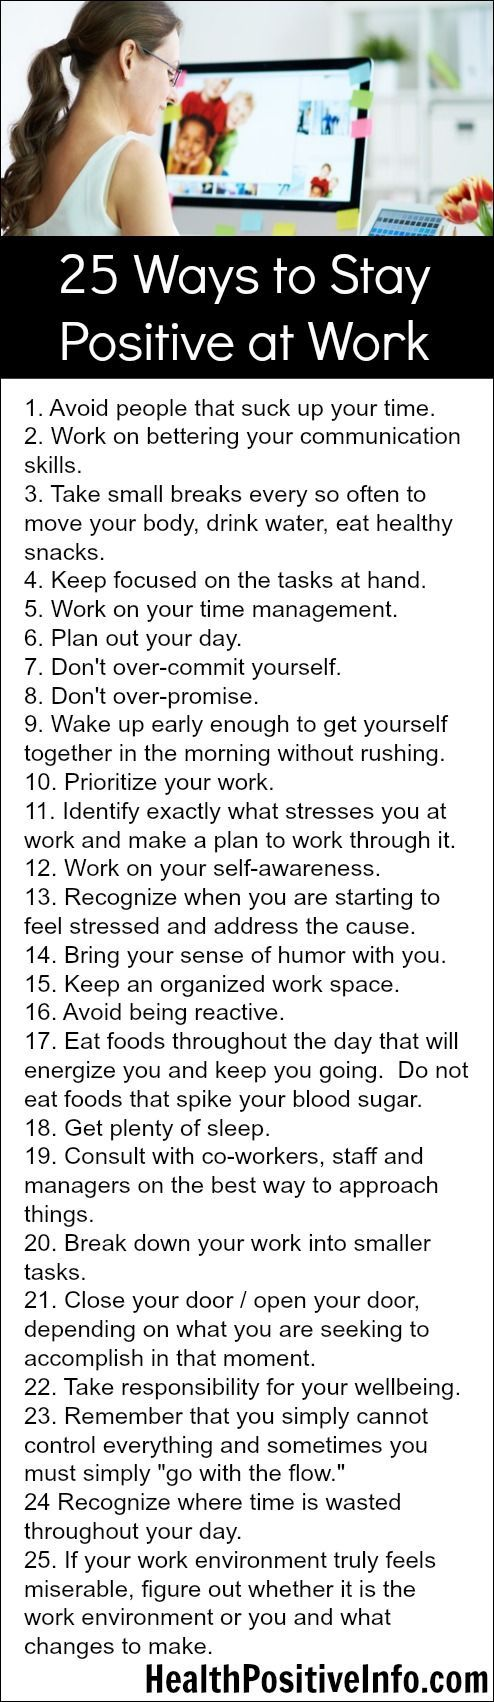 25 Ways to be Positive at Work http://healthpositiveinfo.com/25-ways-to-stay-positive-at-work.html staying positive, positivity #positivity